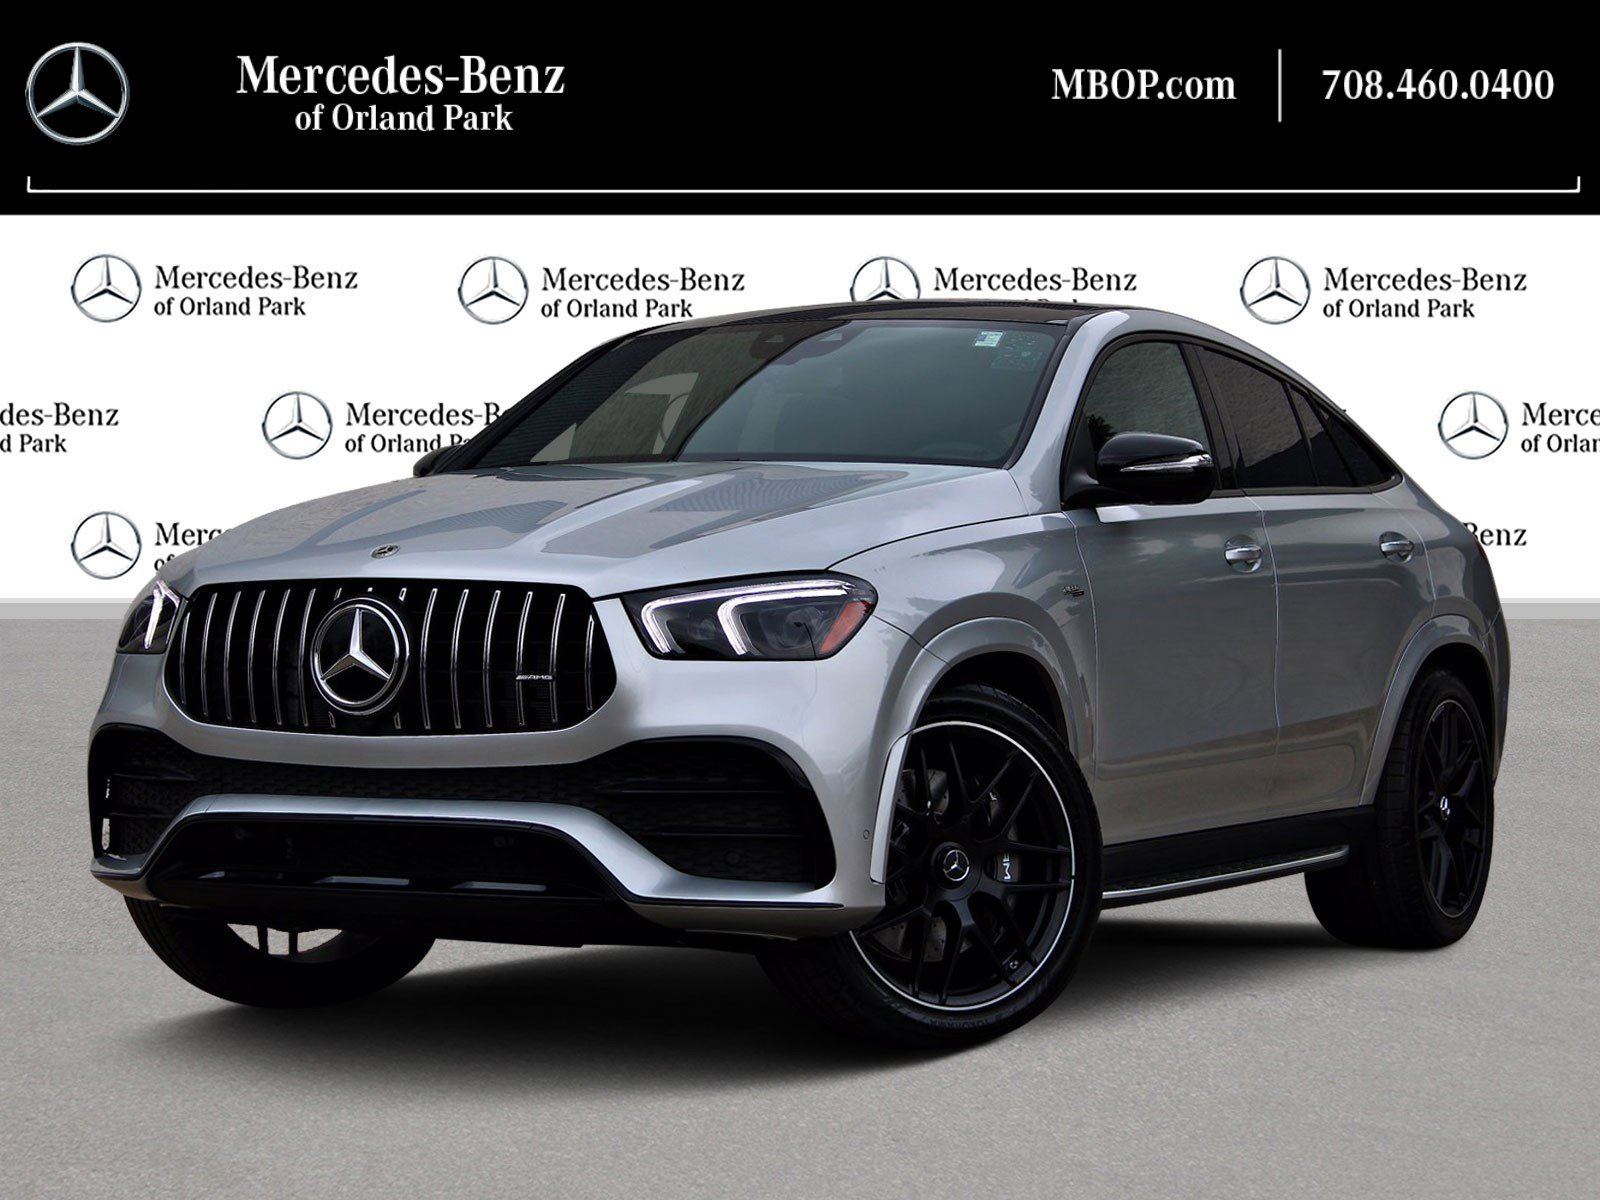 New 2021 Mercedes Benz Gle Amg Gle 53 4matic Coupe Coupe In Orland Park Mb12784 Mercedes Benz Of Orland Park